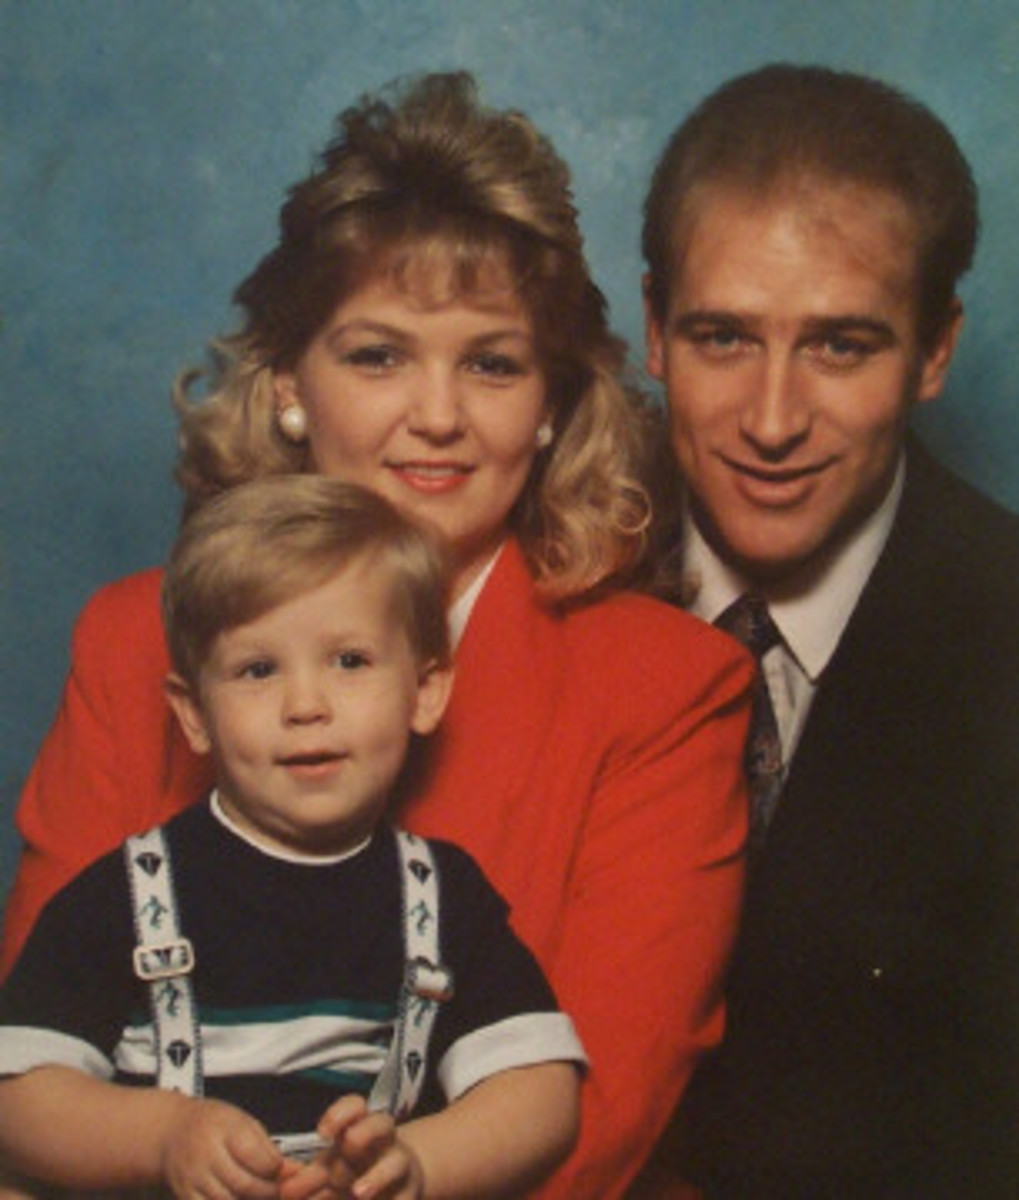 Clark, Laura, and Ryan Rone before the accident in 1993